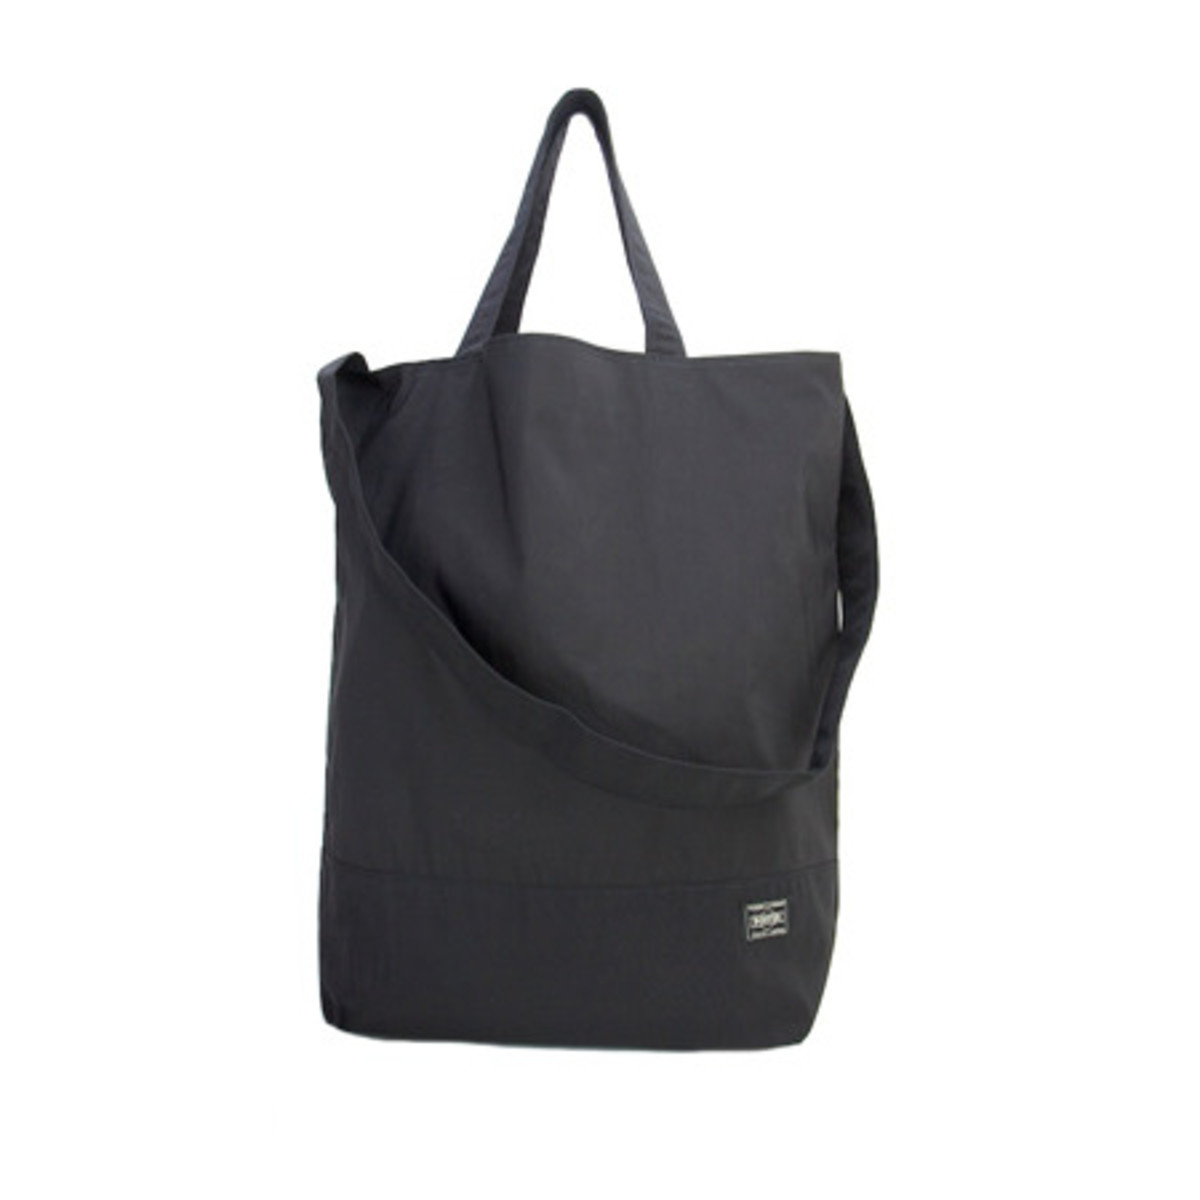 2-way-shopping-bag-black